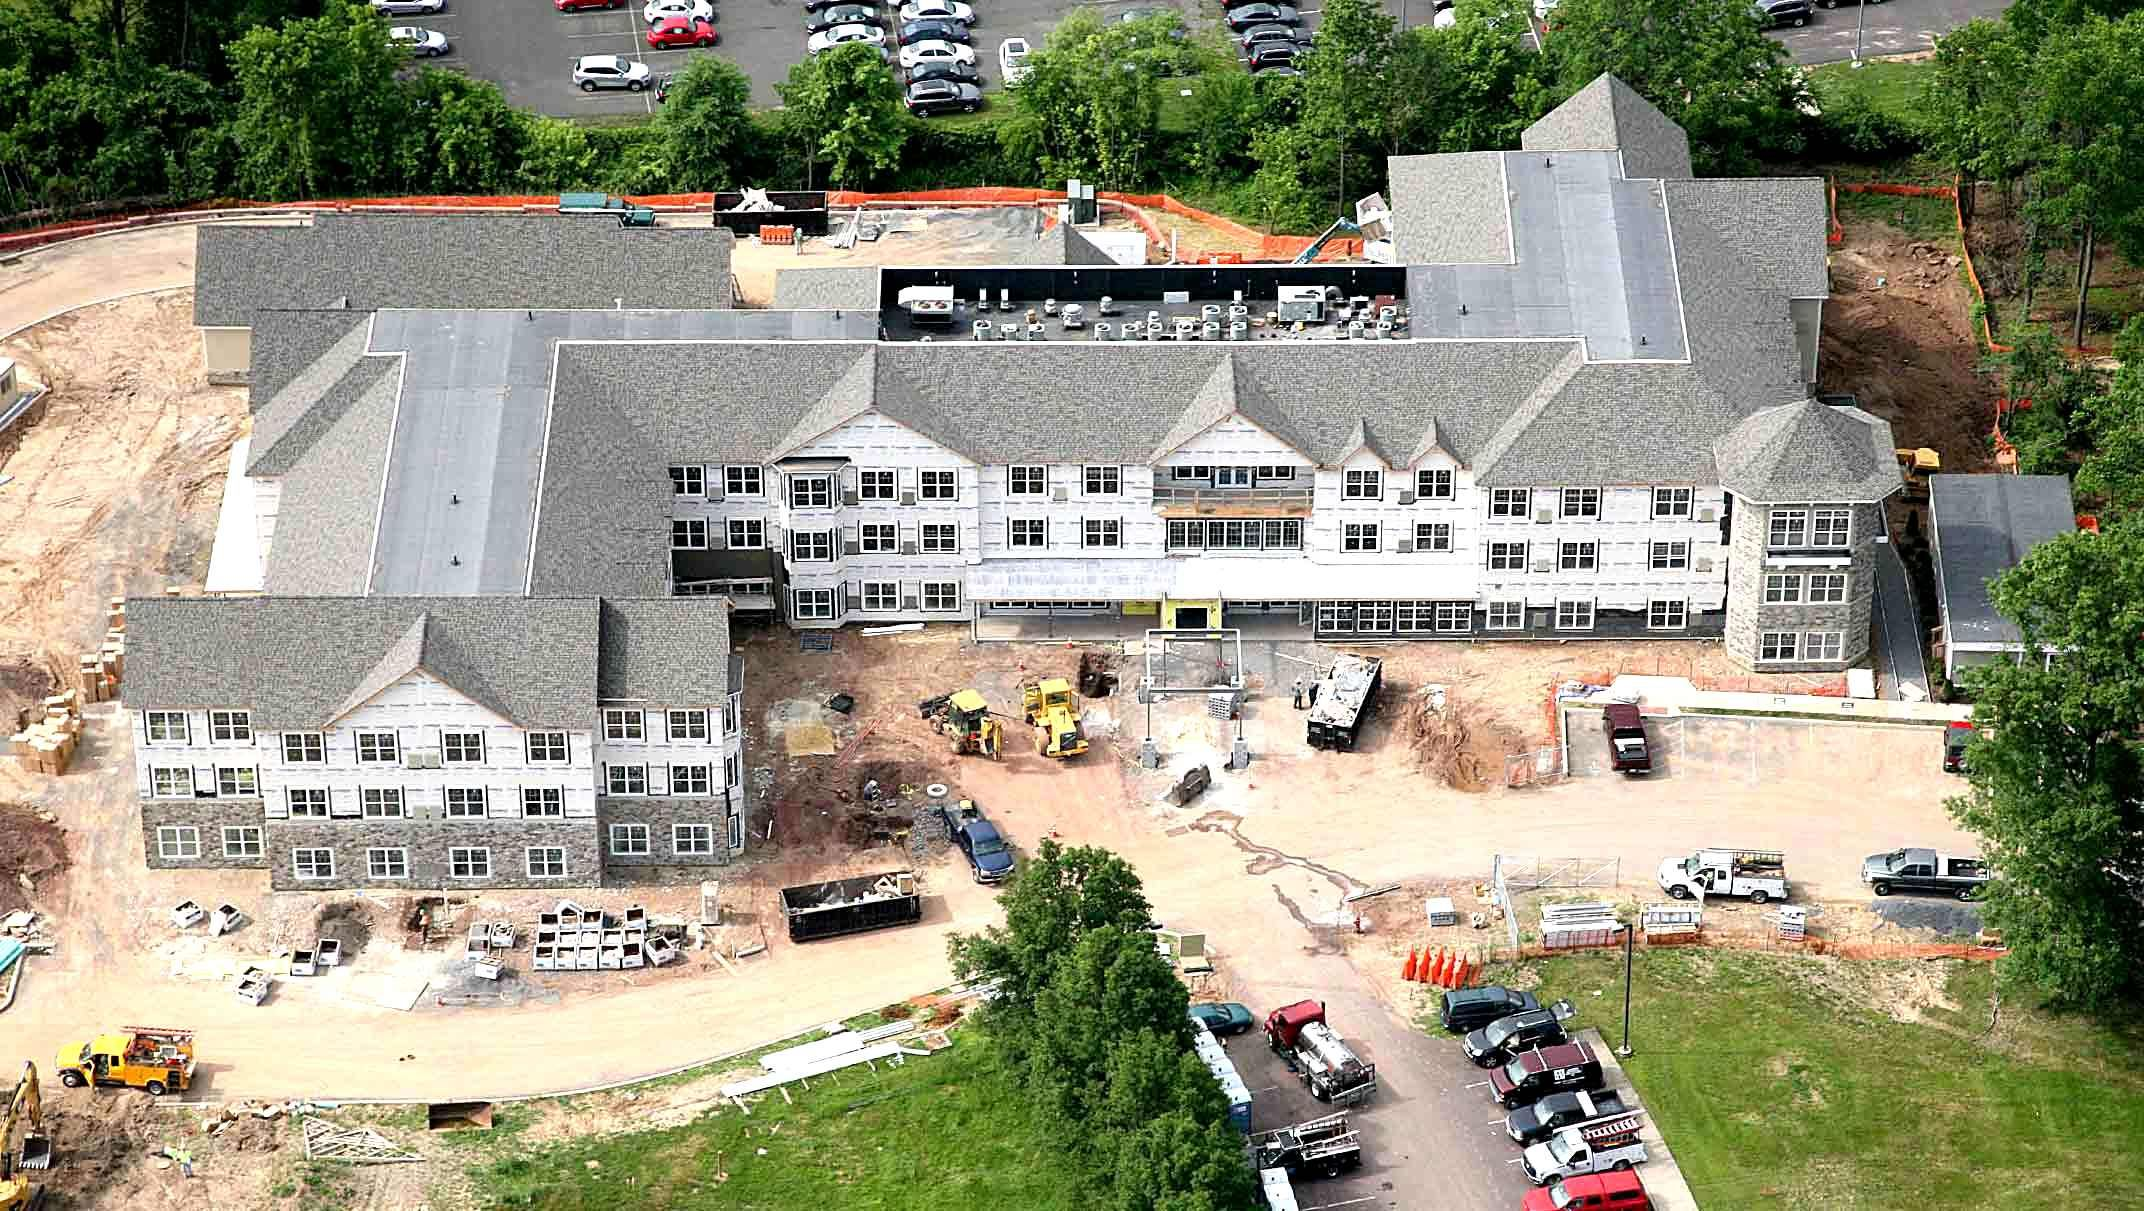 Visit http://imcconstruction.com/project/formation-shelbourne-senior-living-services/ to learn more about Formation-Shelbourne Senior Living. #Doylestown #Pennsylvania #SeniorLiving #IMC #Construction #CurrentProject